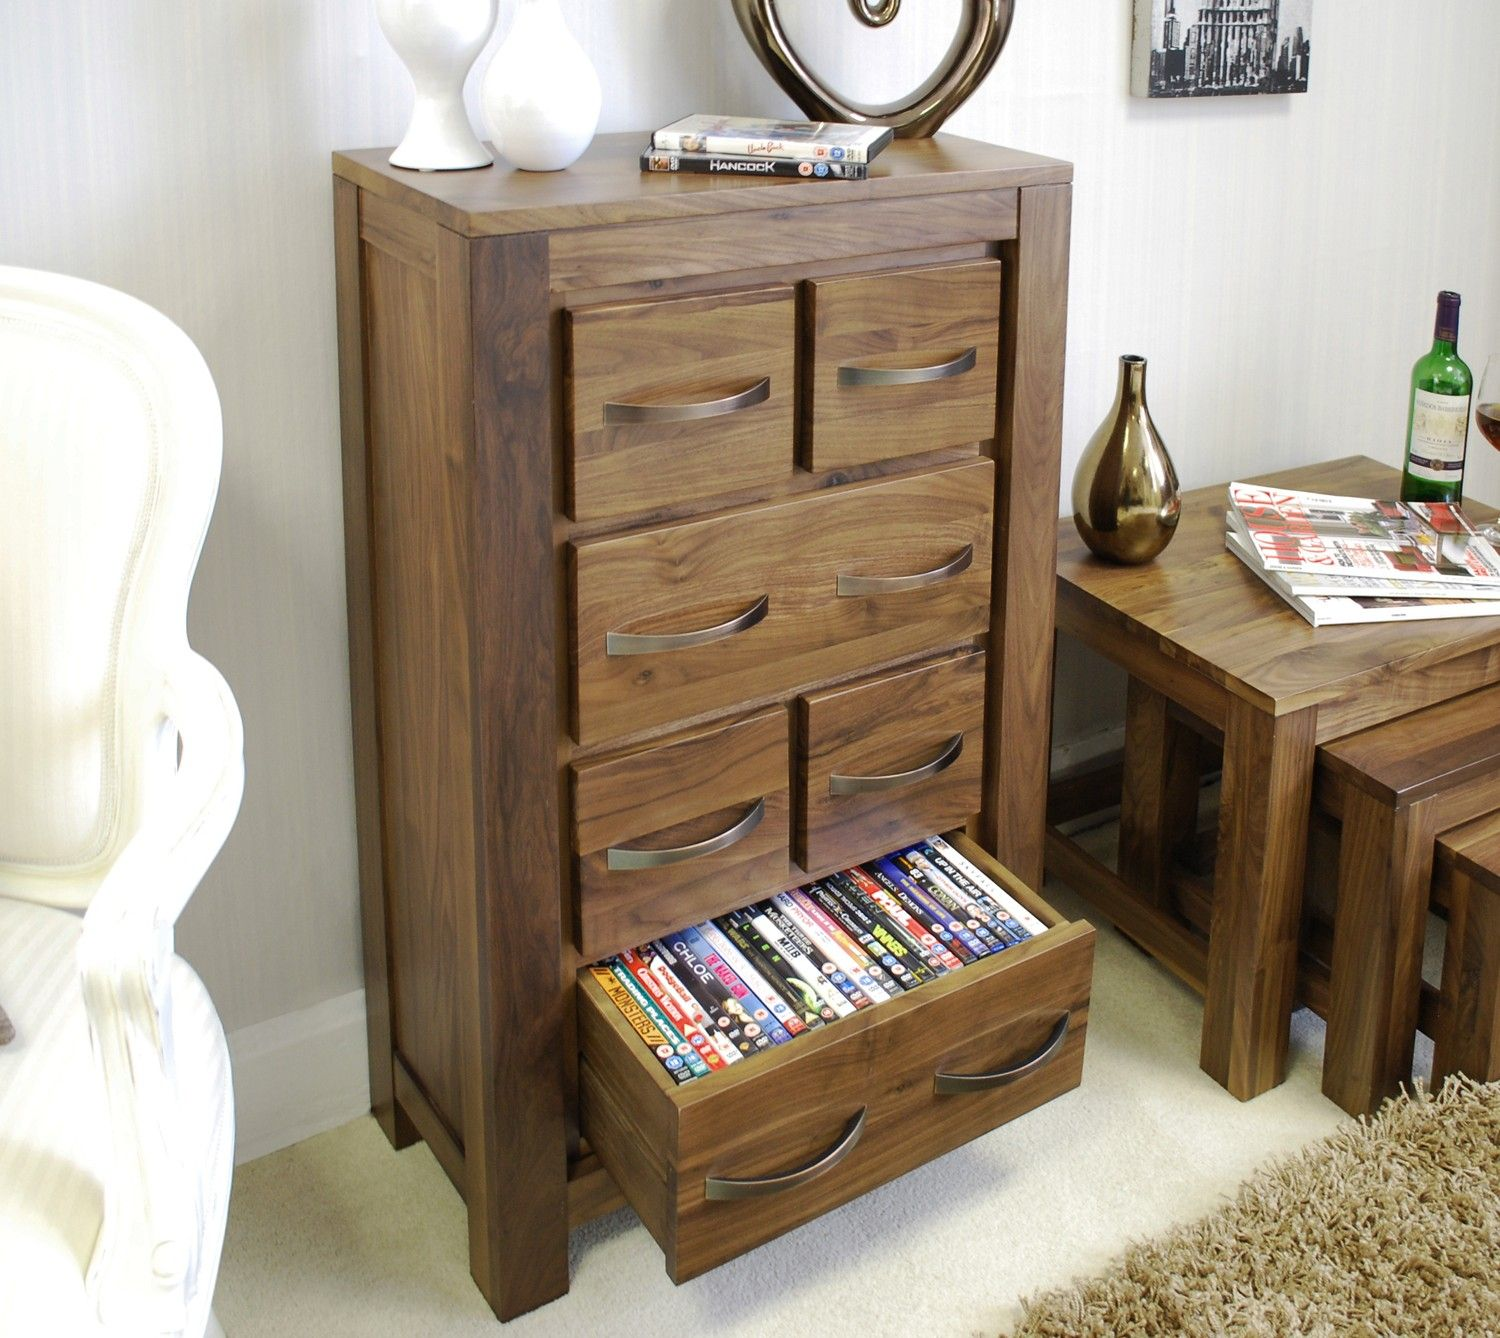 This Mayan Walnut DVD / CD Storage Chest Is The Perfect Storage Solution.  It Could